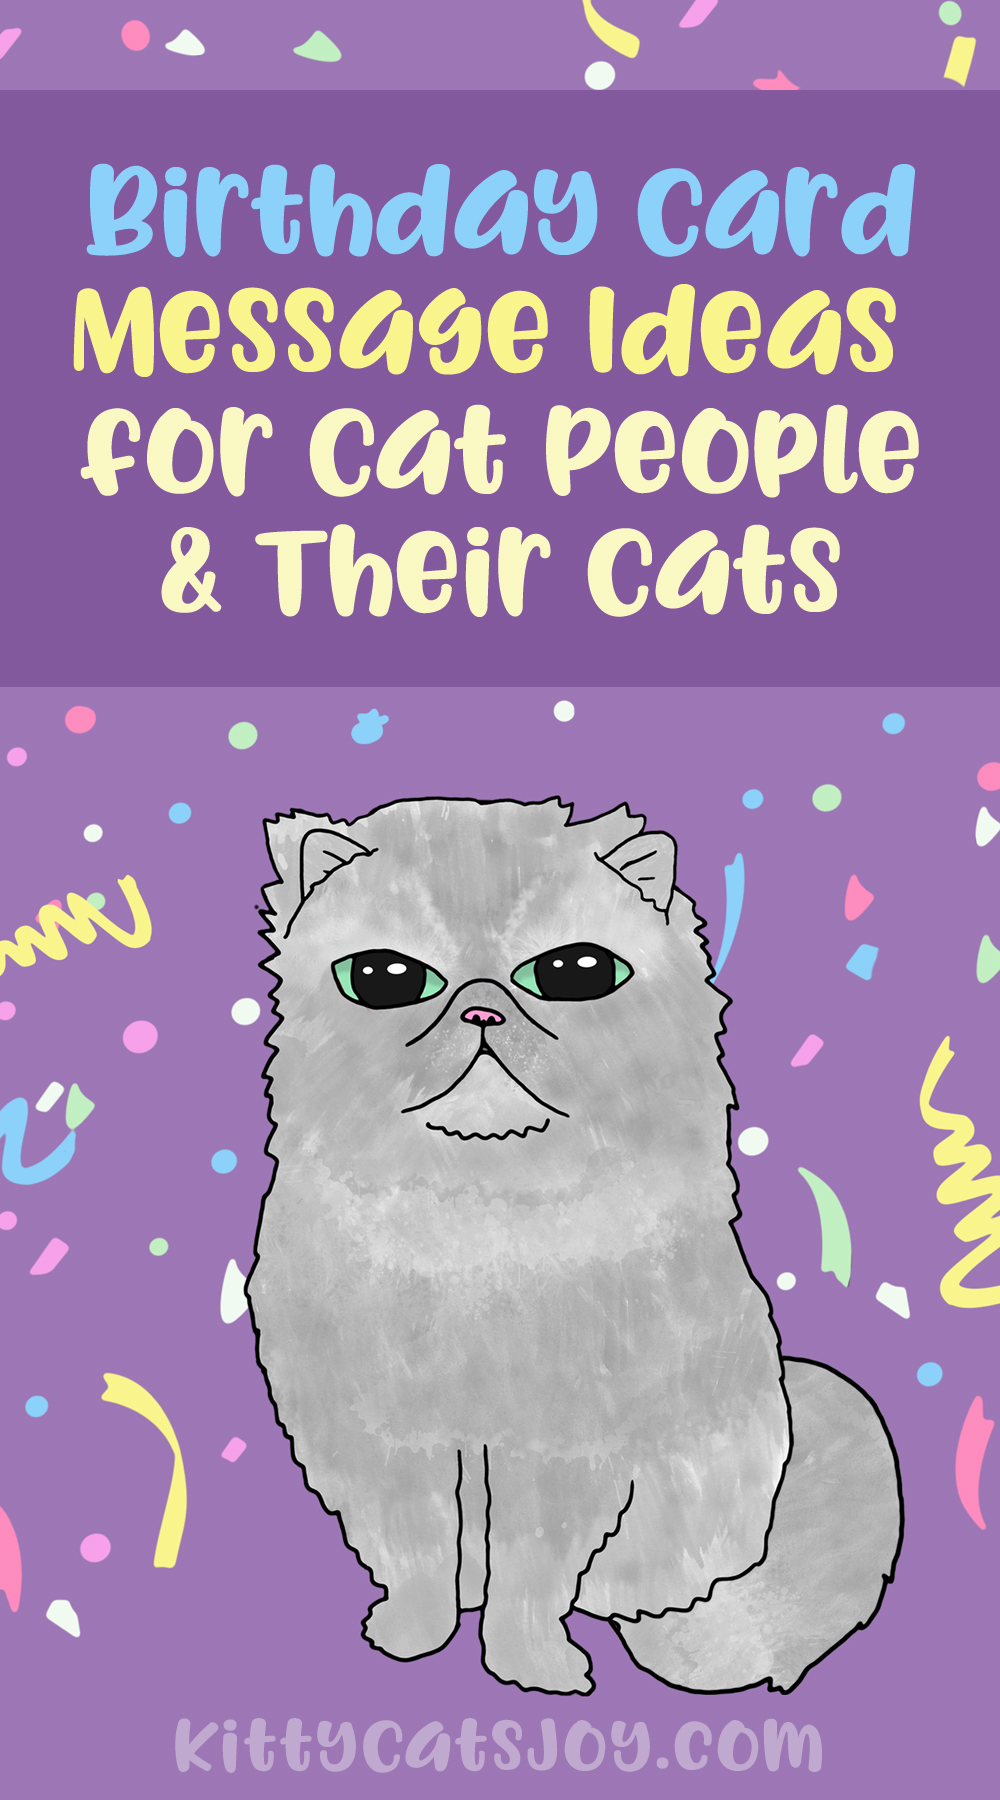 What to Write in Birthday Cards for Cat People & Their Cats